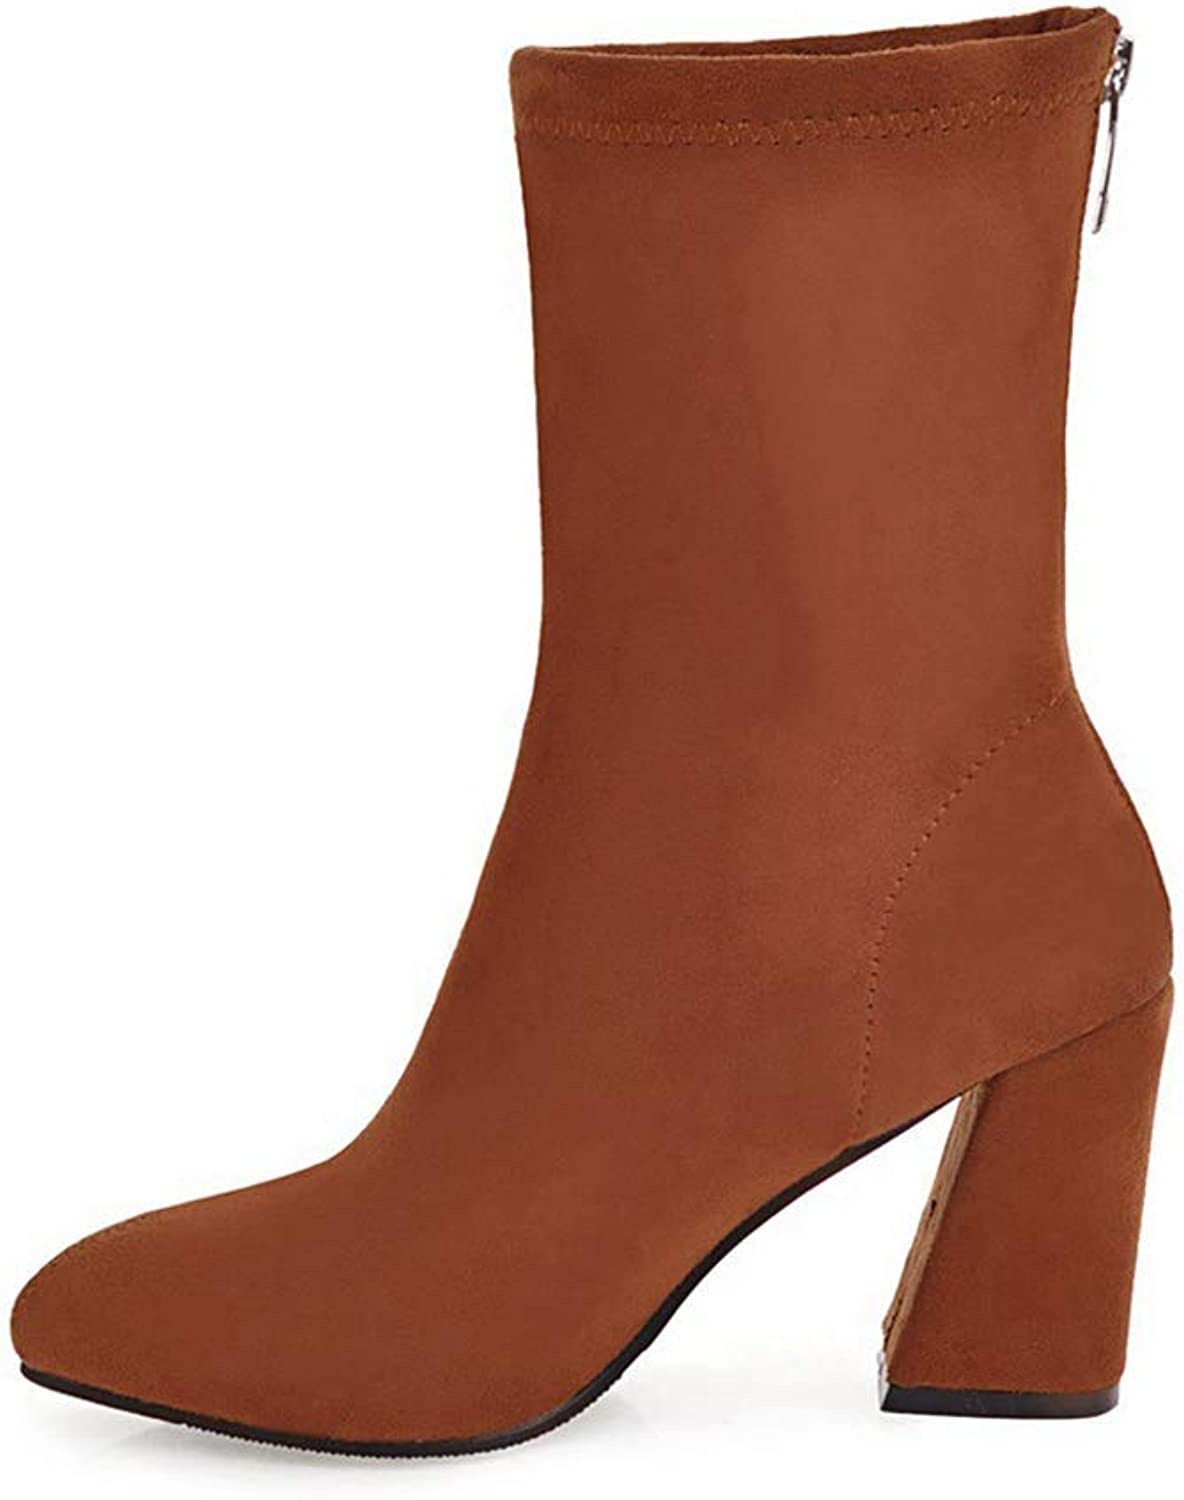 T-JULY Women's Winter Boots Ladies Mid Calf Boots Zip Design Western Boots Girls Black bluee Red shoes